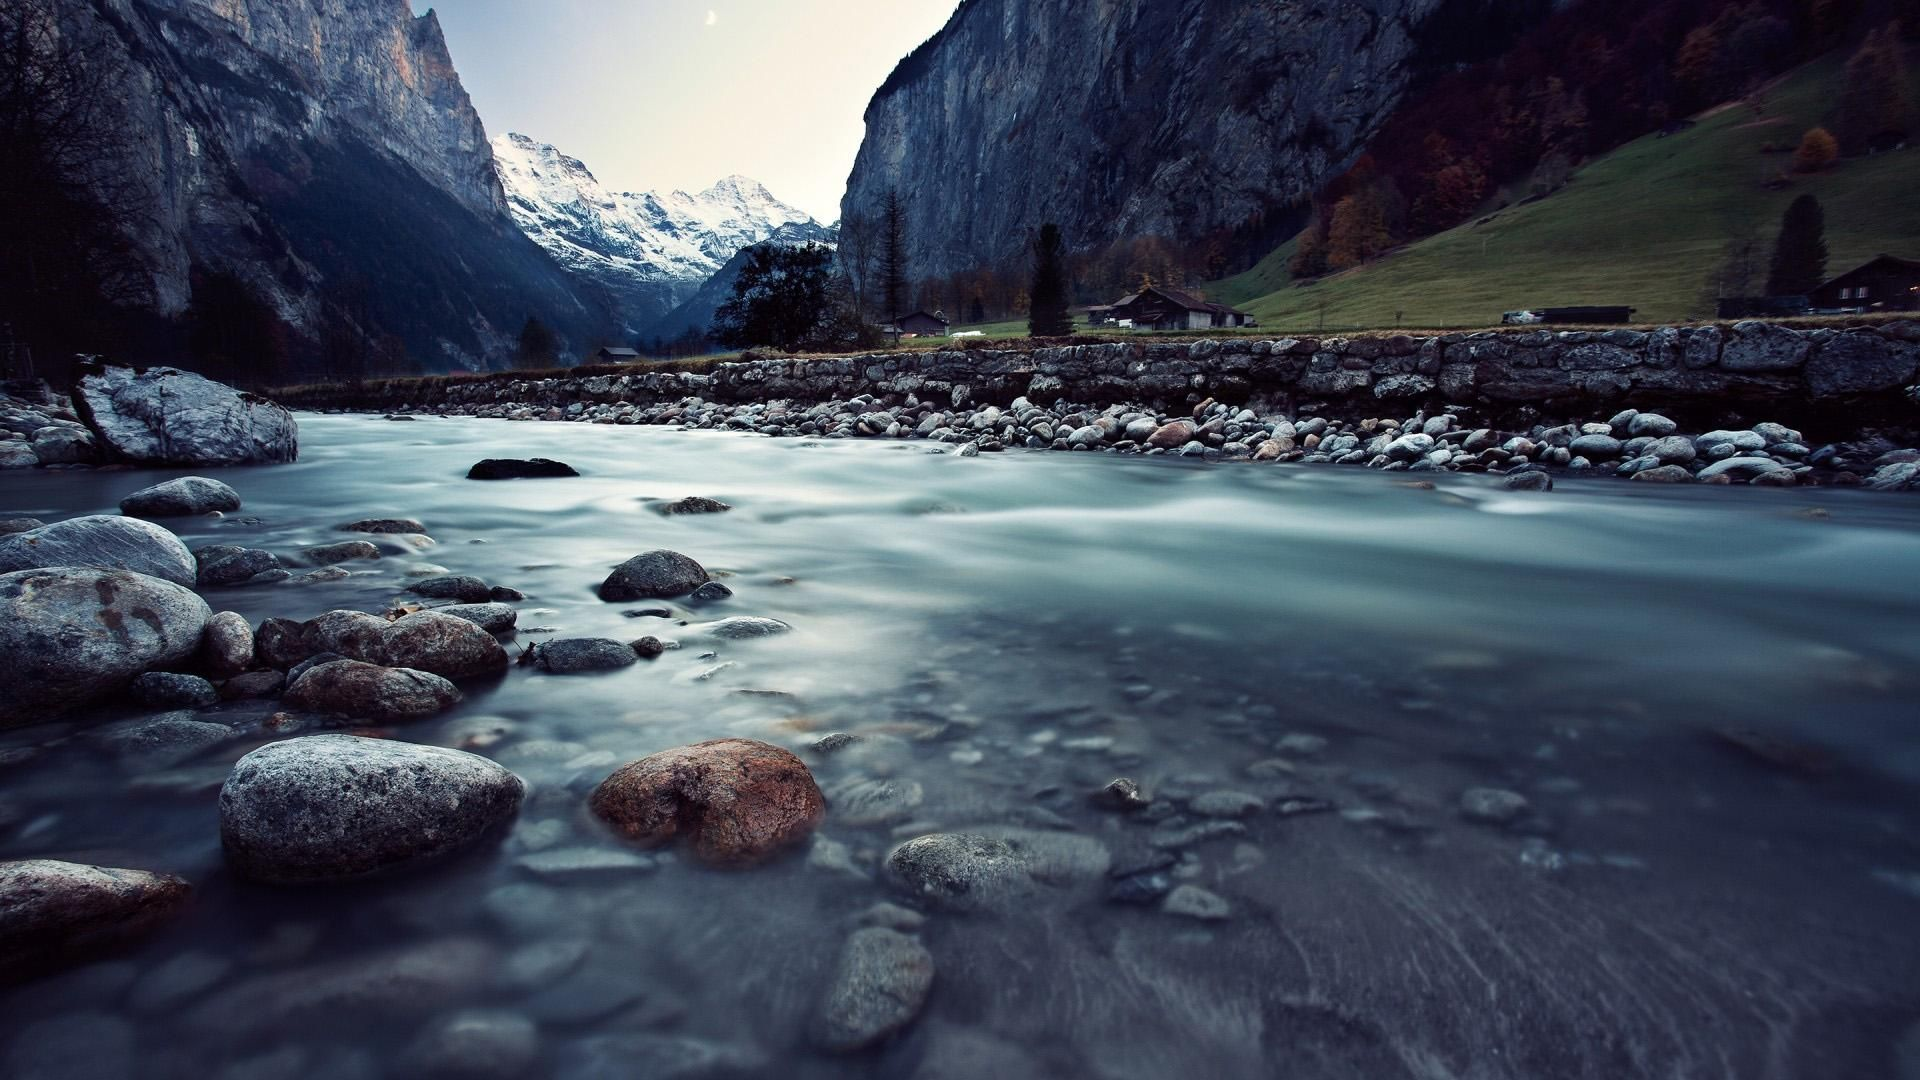 Awesome landscape hd wallpapers 1080p About Wallpapers Image with landscape hd wallpapers 1080p ...